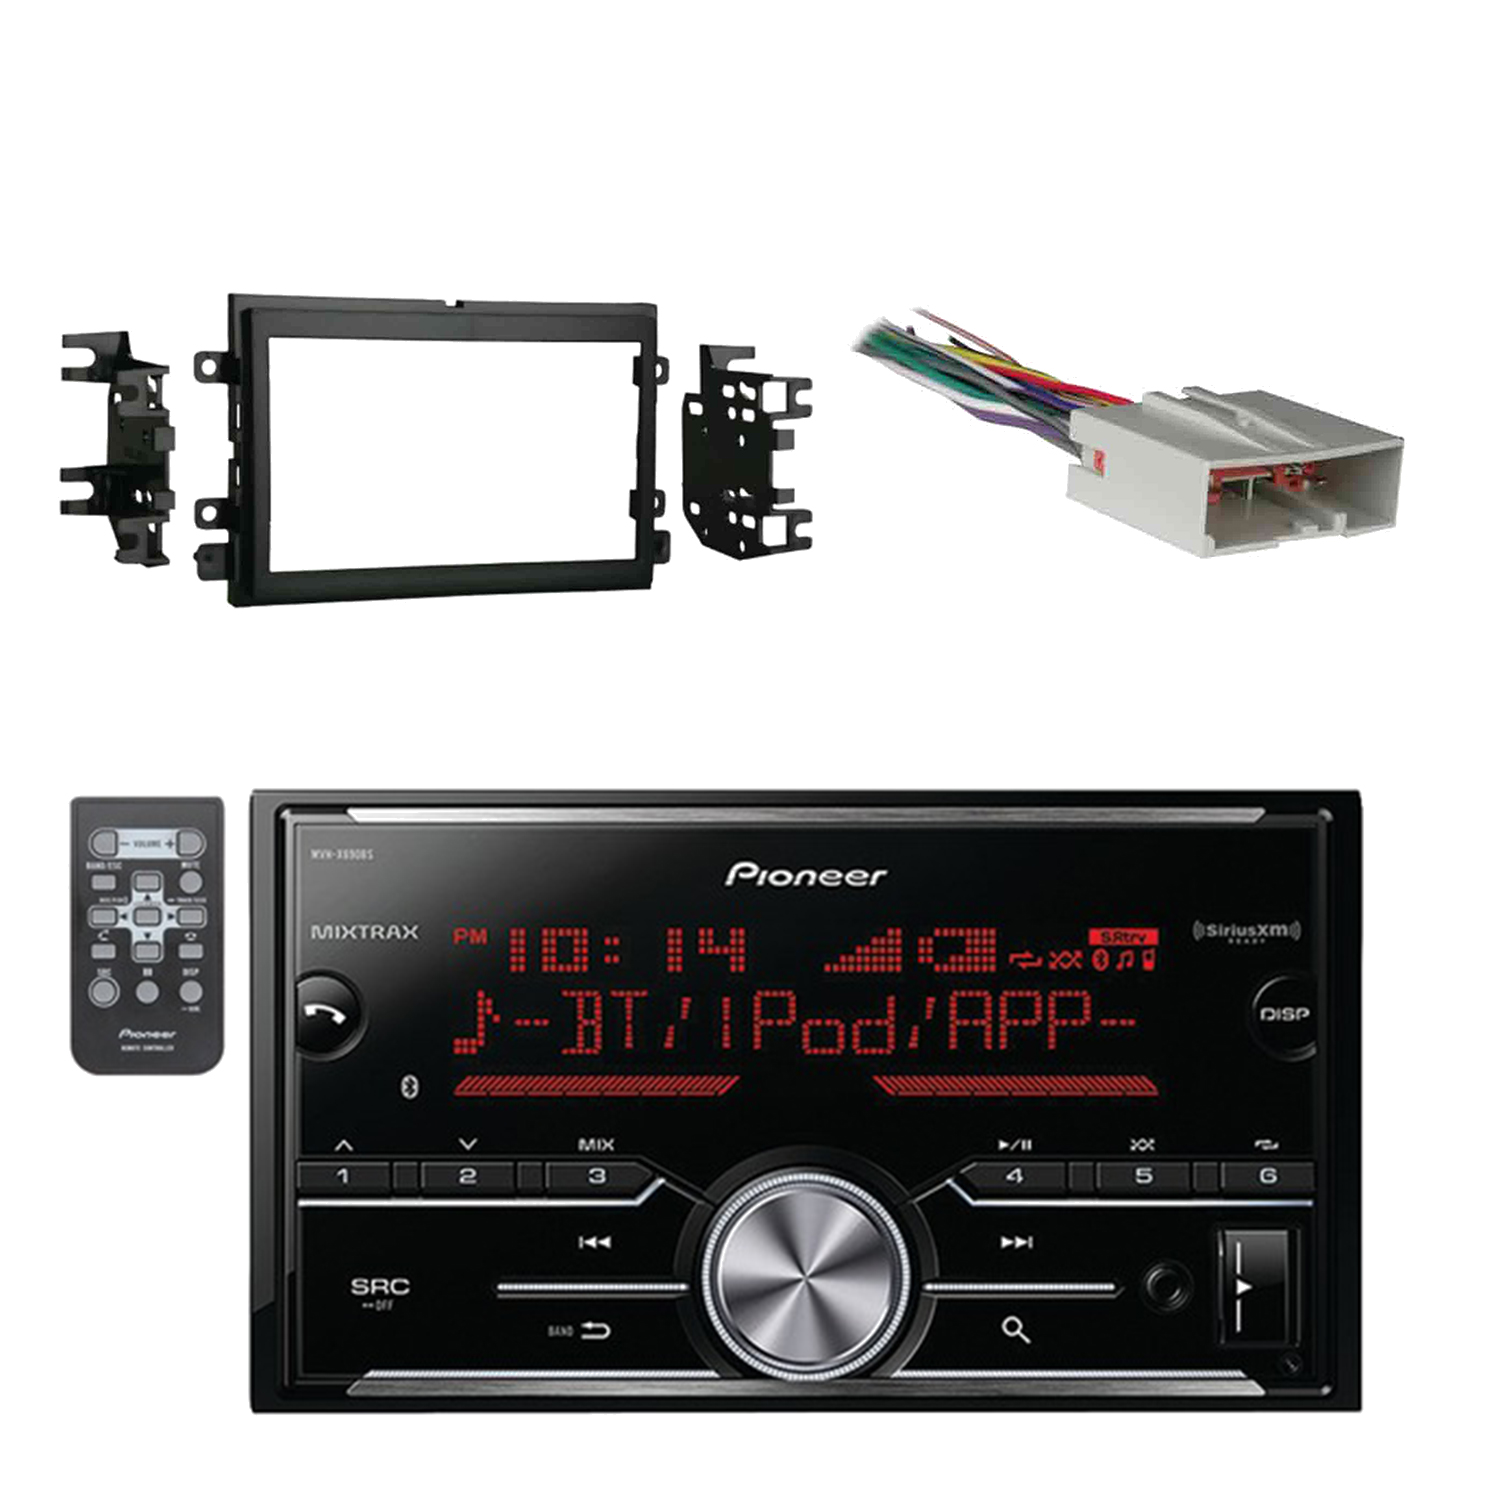 Pioneer Vehicle Digital Media 2DIN Receiver with Bluetooth Enhanced Audio Functions, Black with Metra Double DIN Installation Kit for Select 2004-2006 Ford Vehicles & Metra Electronics Wiring Harness